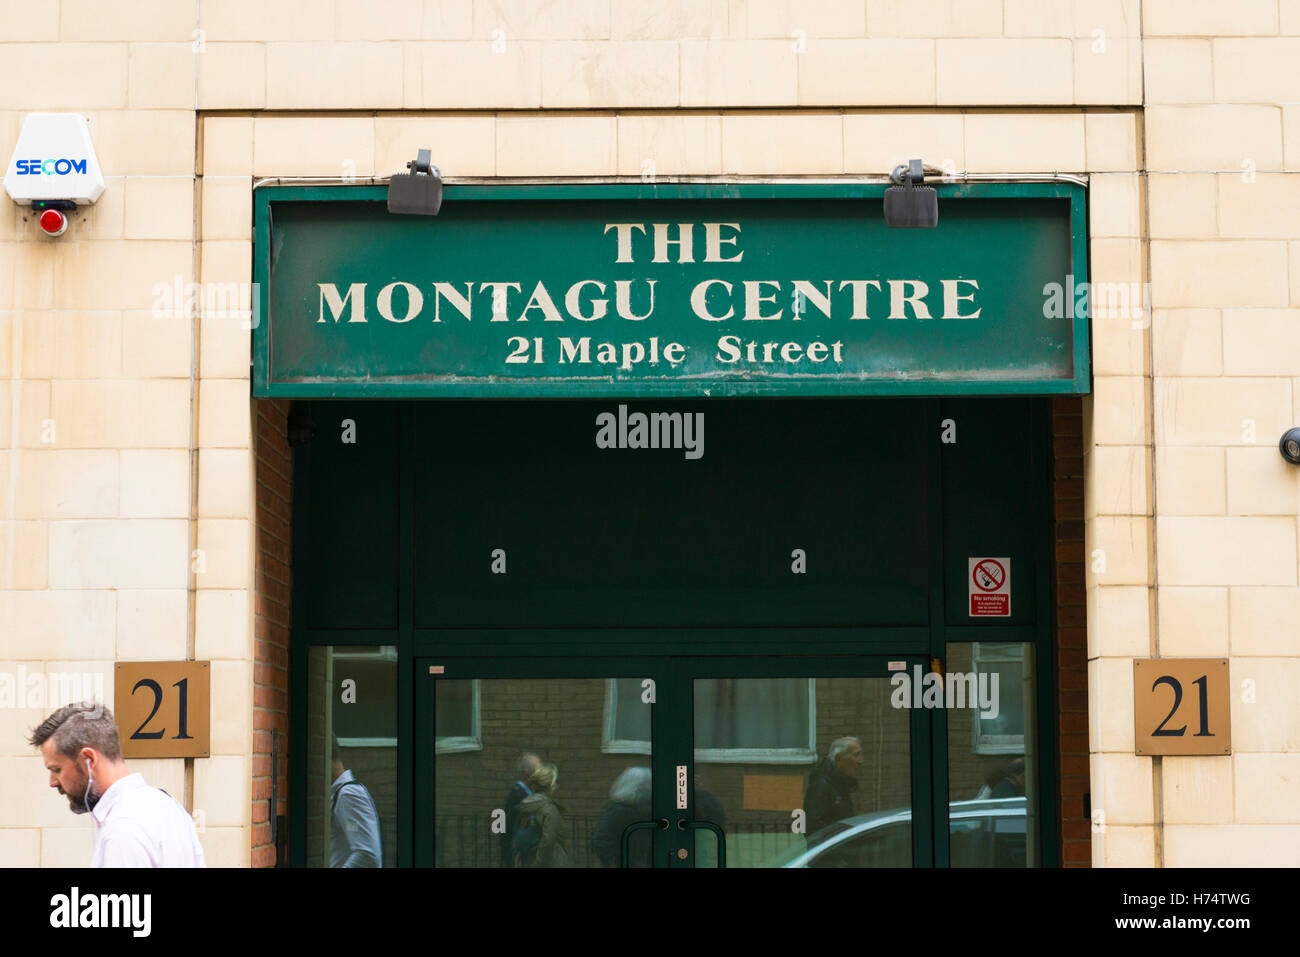 London West End Montagu Centre HQ headquarters ULPS Union Liberal Progressive Synagogues opened Lily Montagu Founder - Stock Image